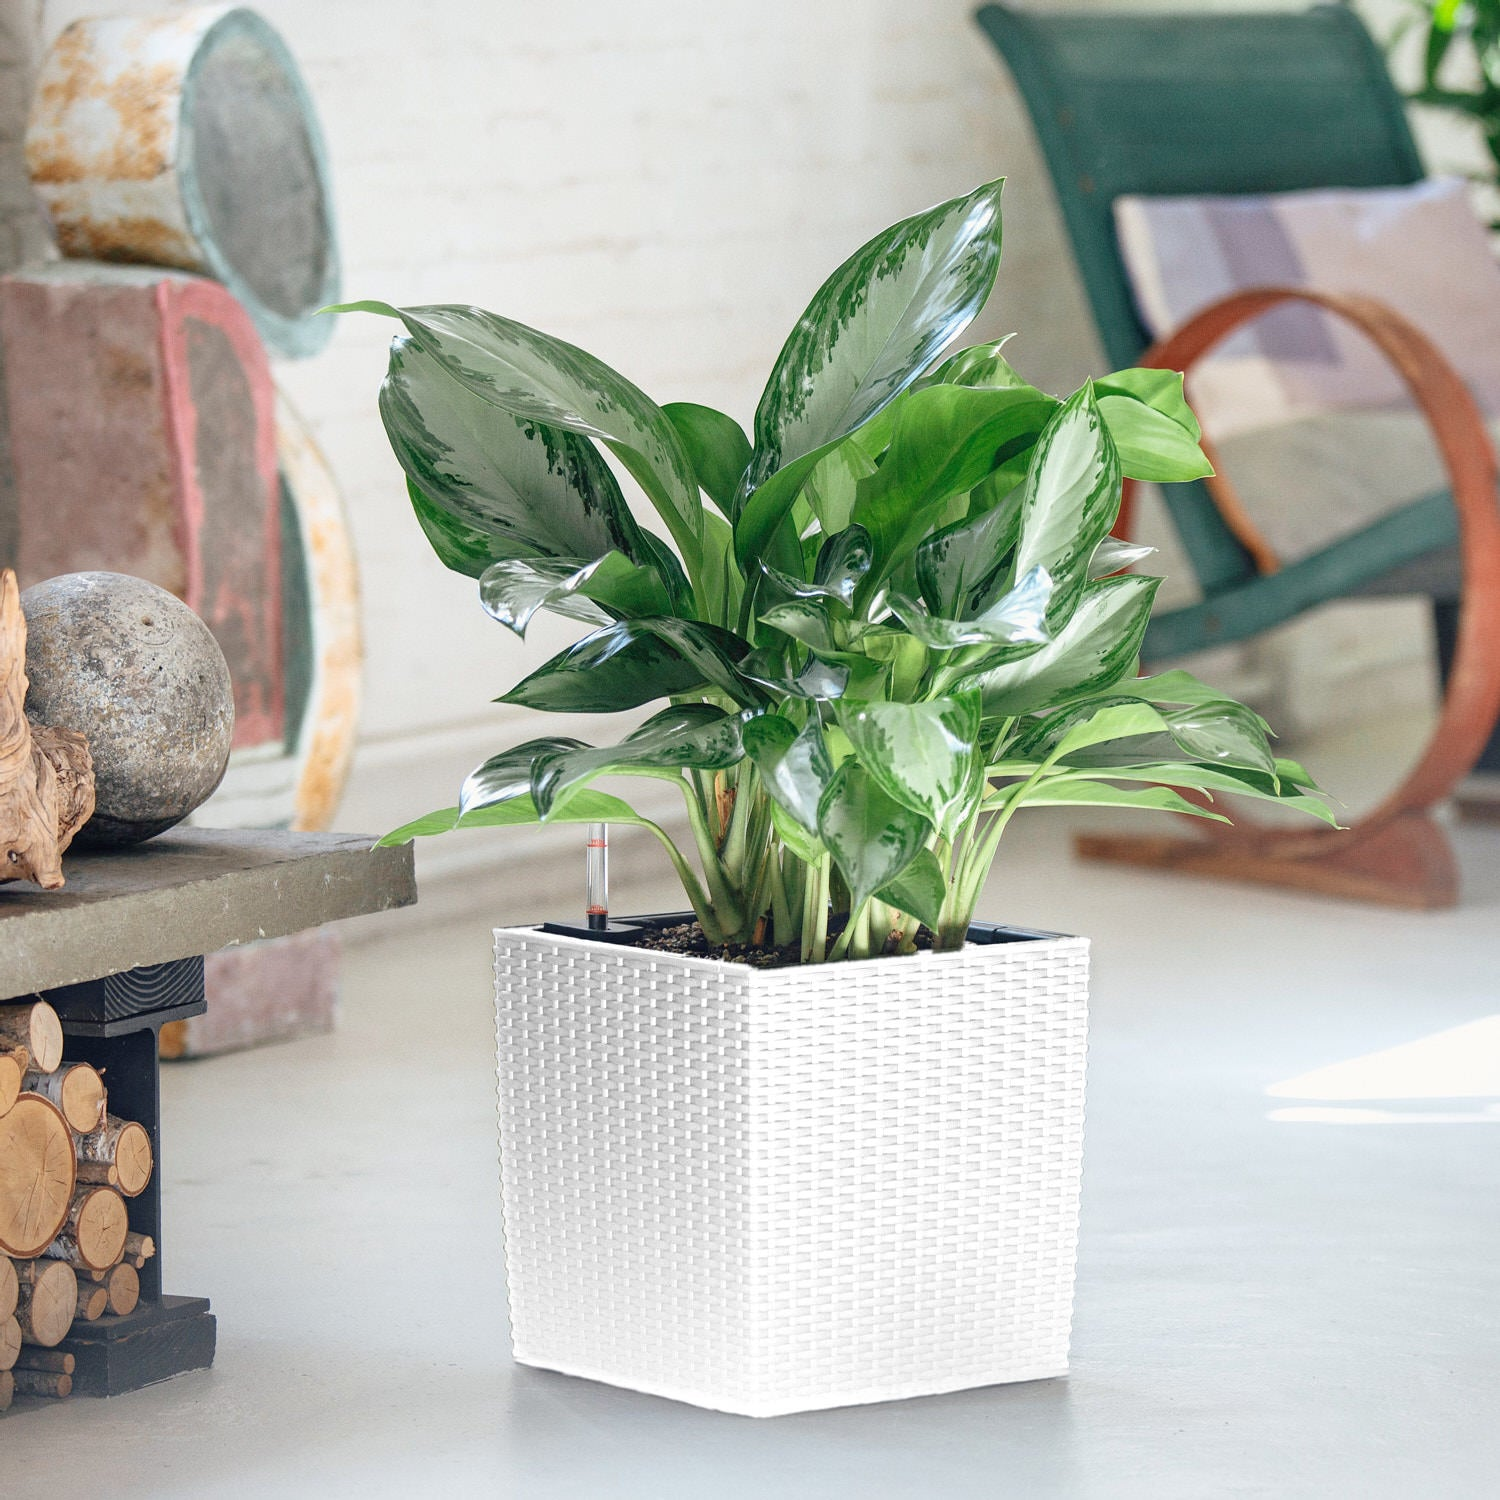 Aglaonema Potted Lechuza Cube Cottage White Planter | My City Plants